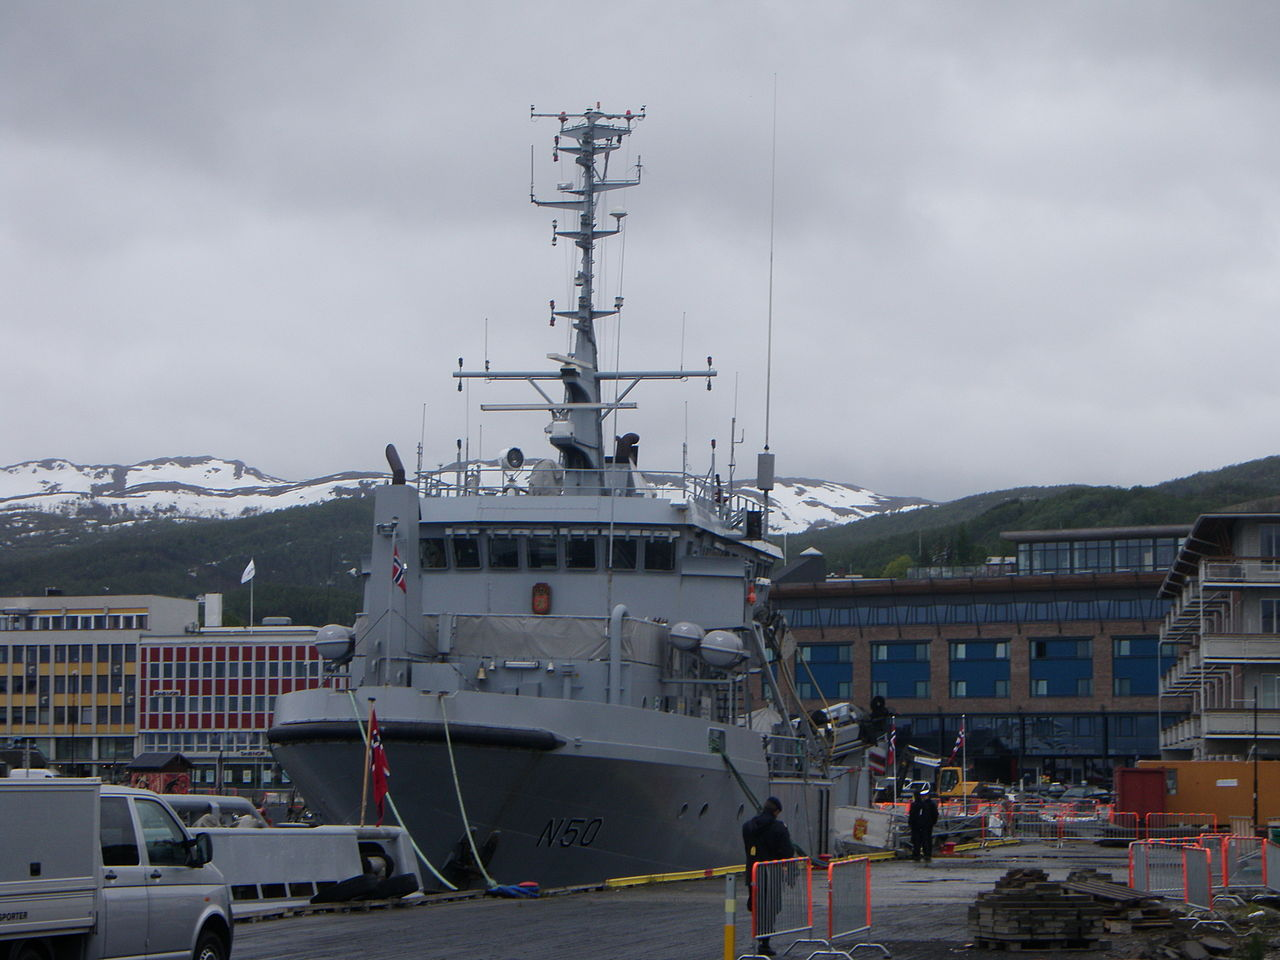 1280px-hnoms_tyr_n50_in_harstad_2011.jpg